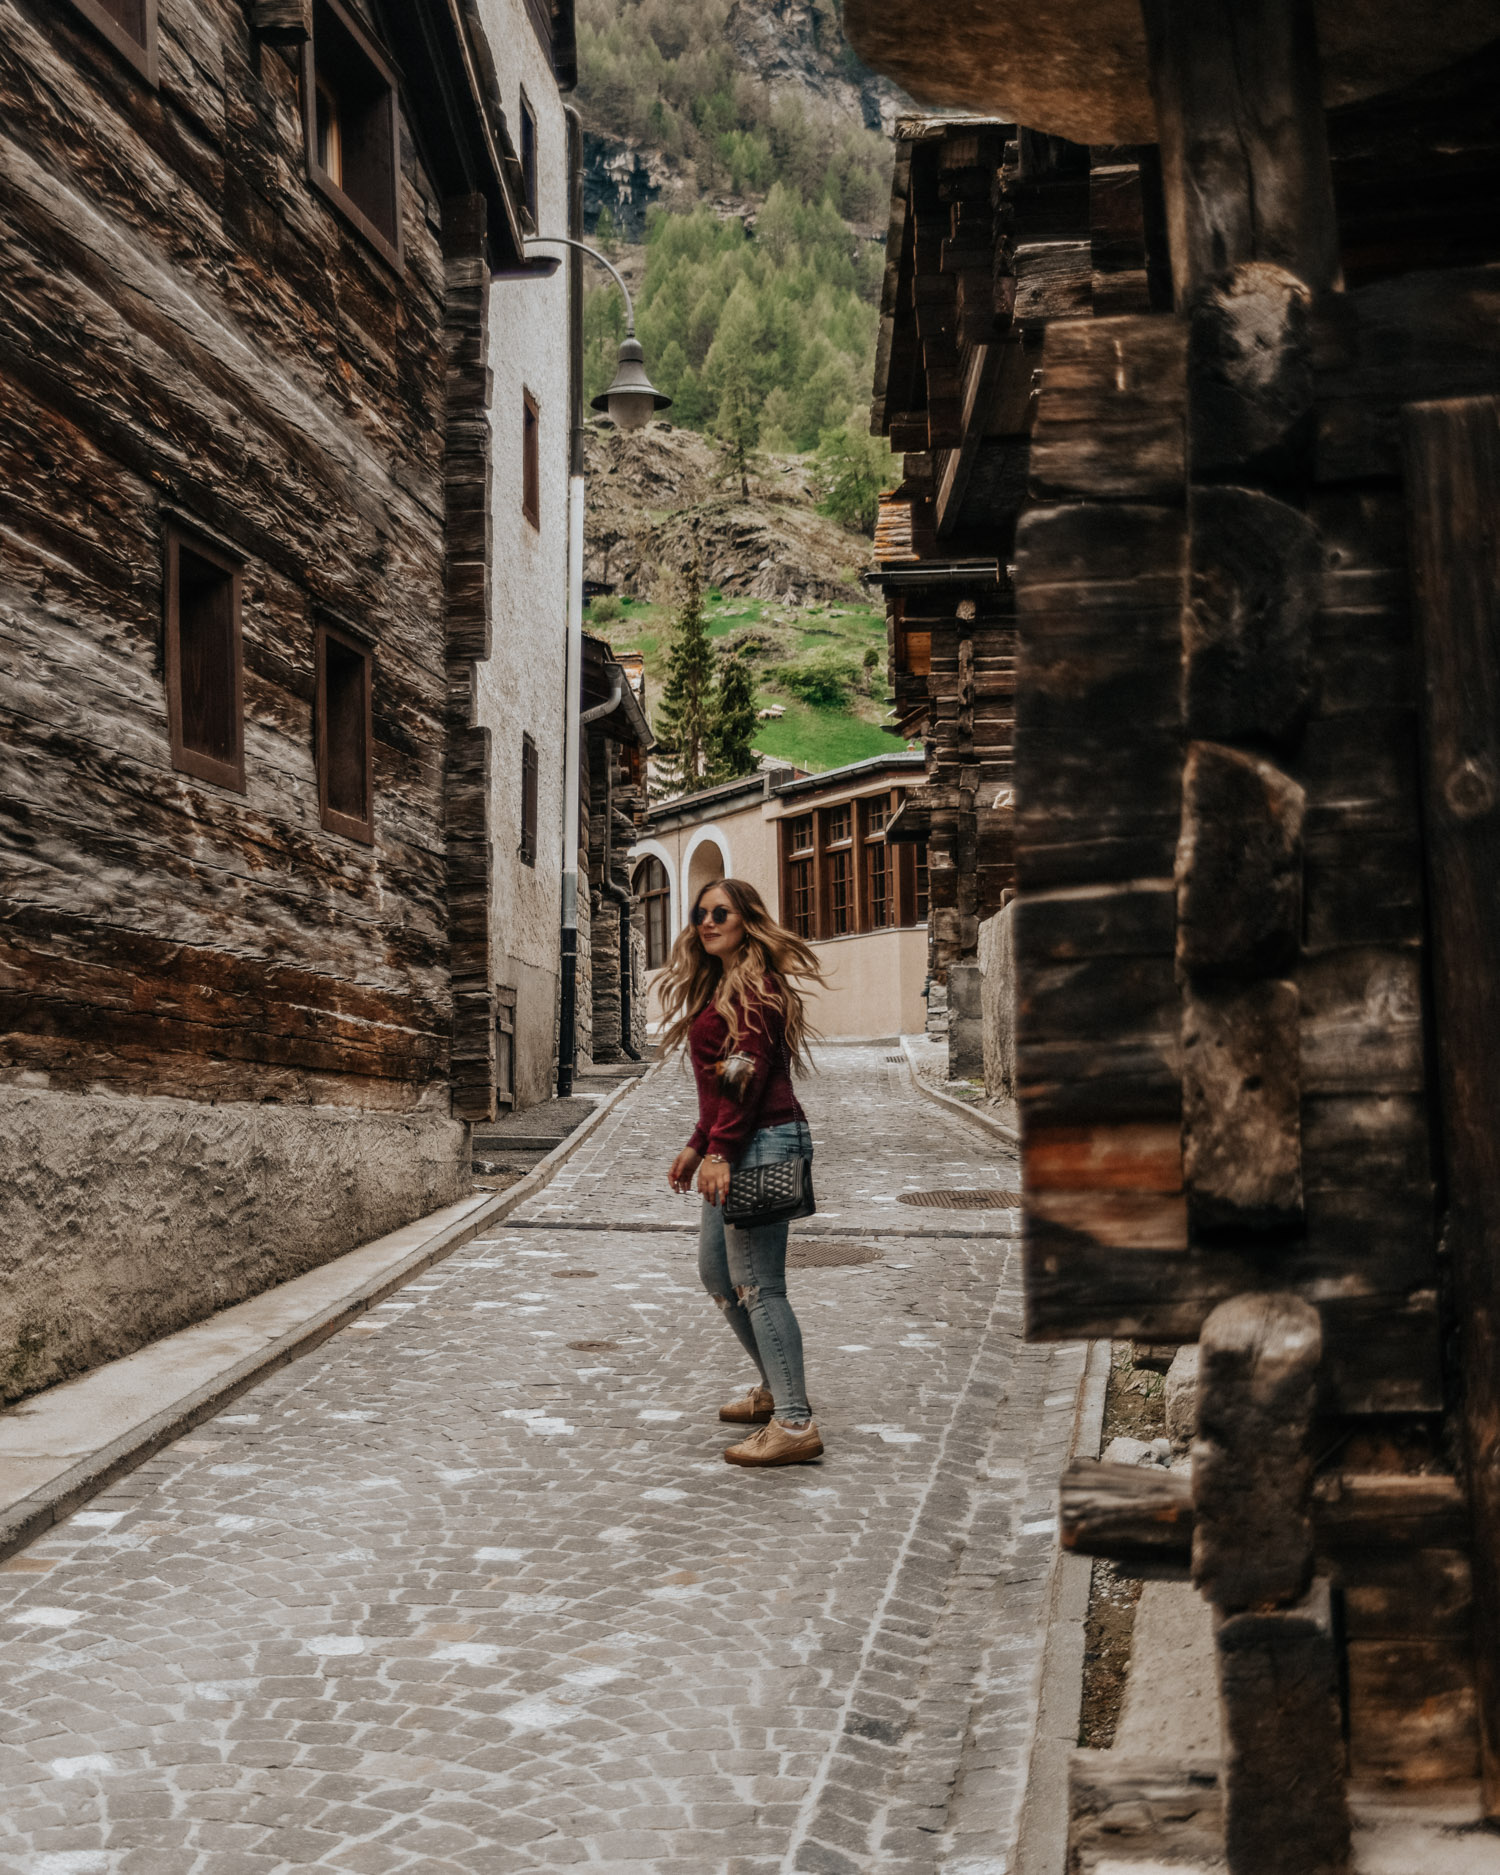 Things to do in Zermatt -Stroll through the old town